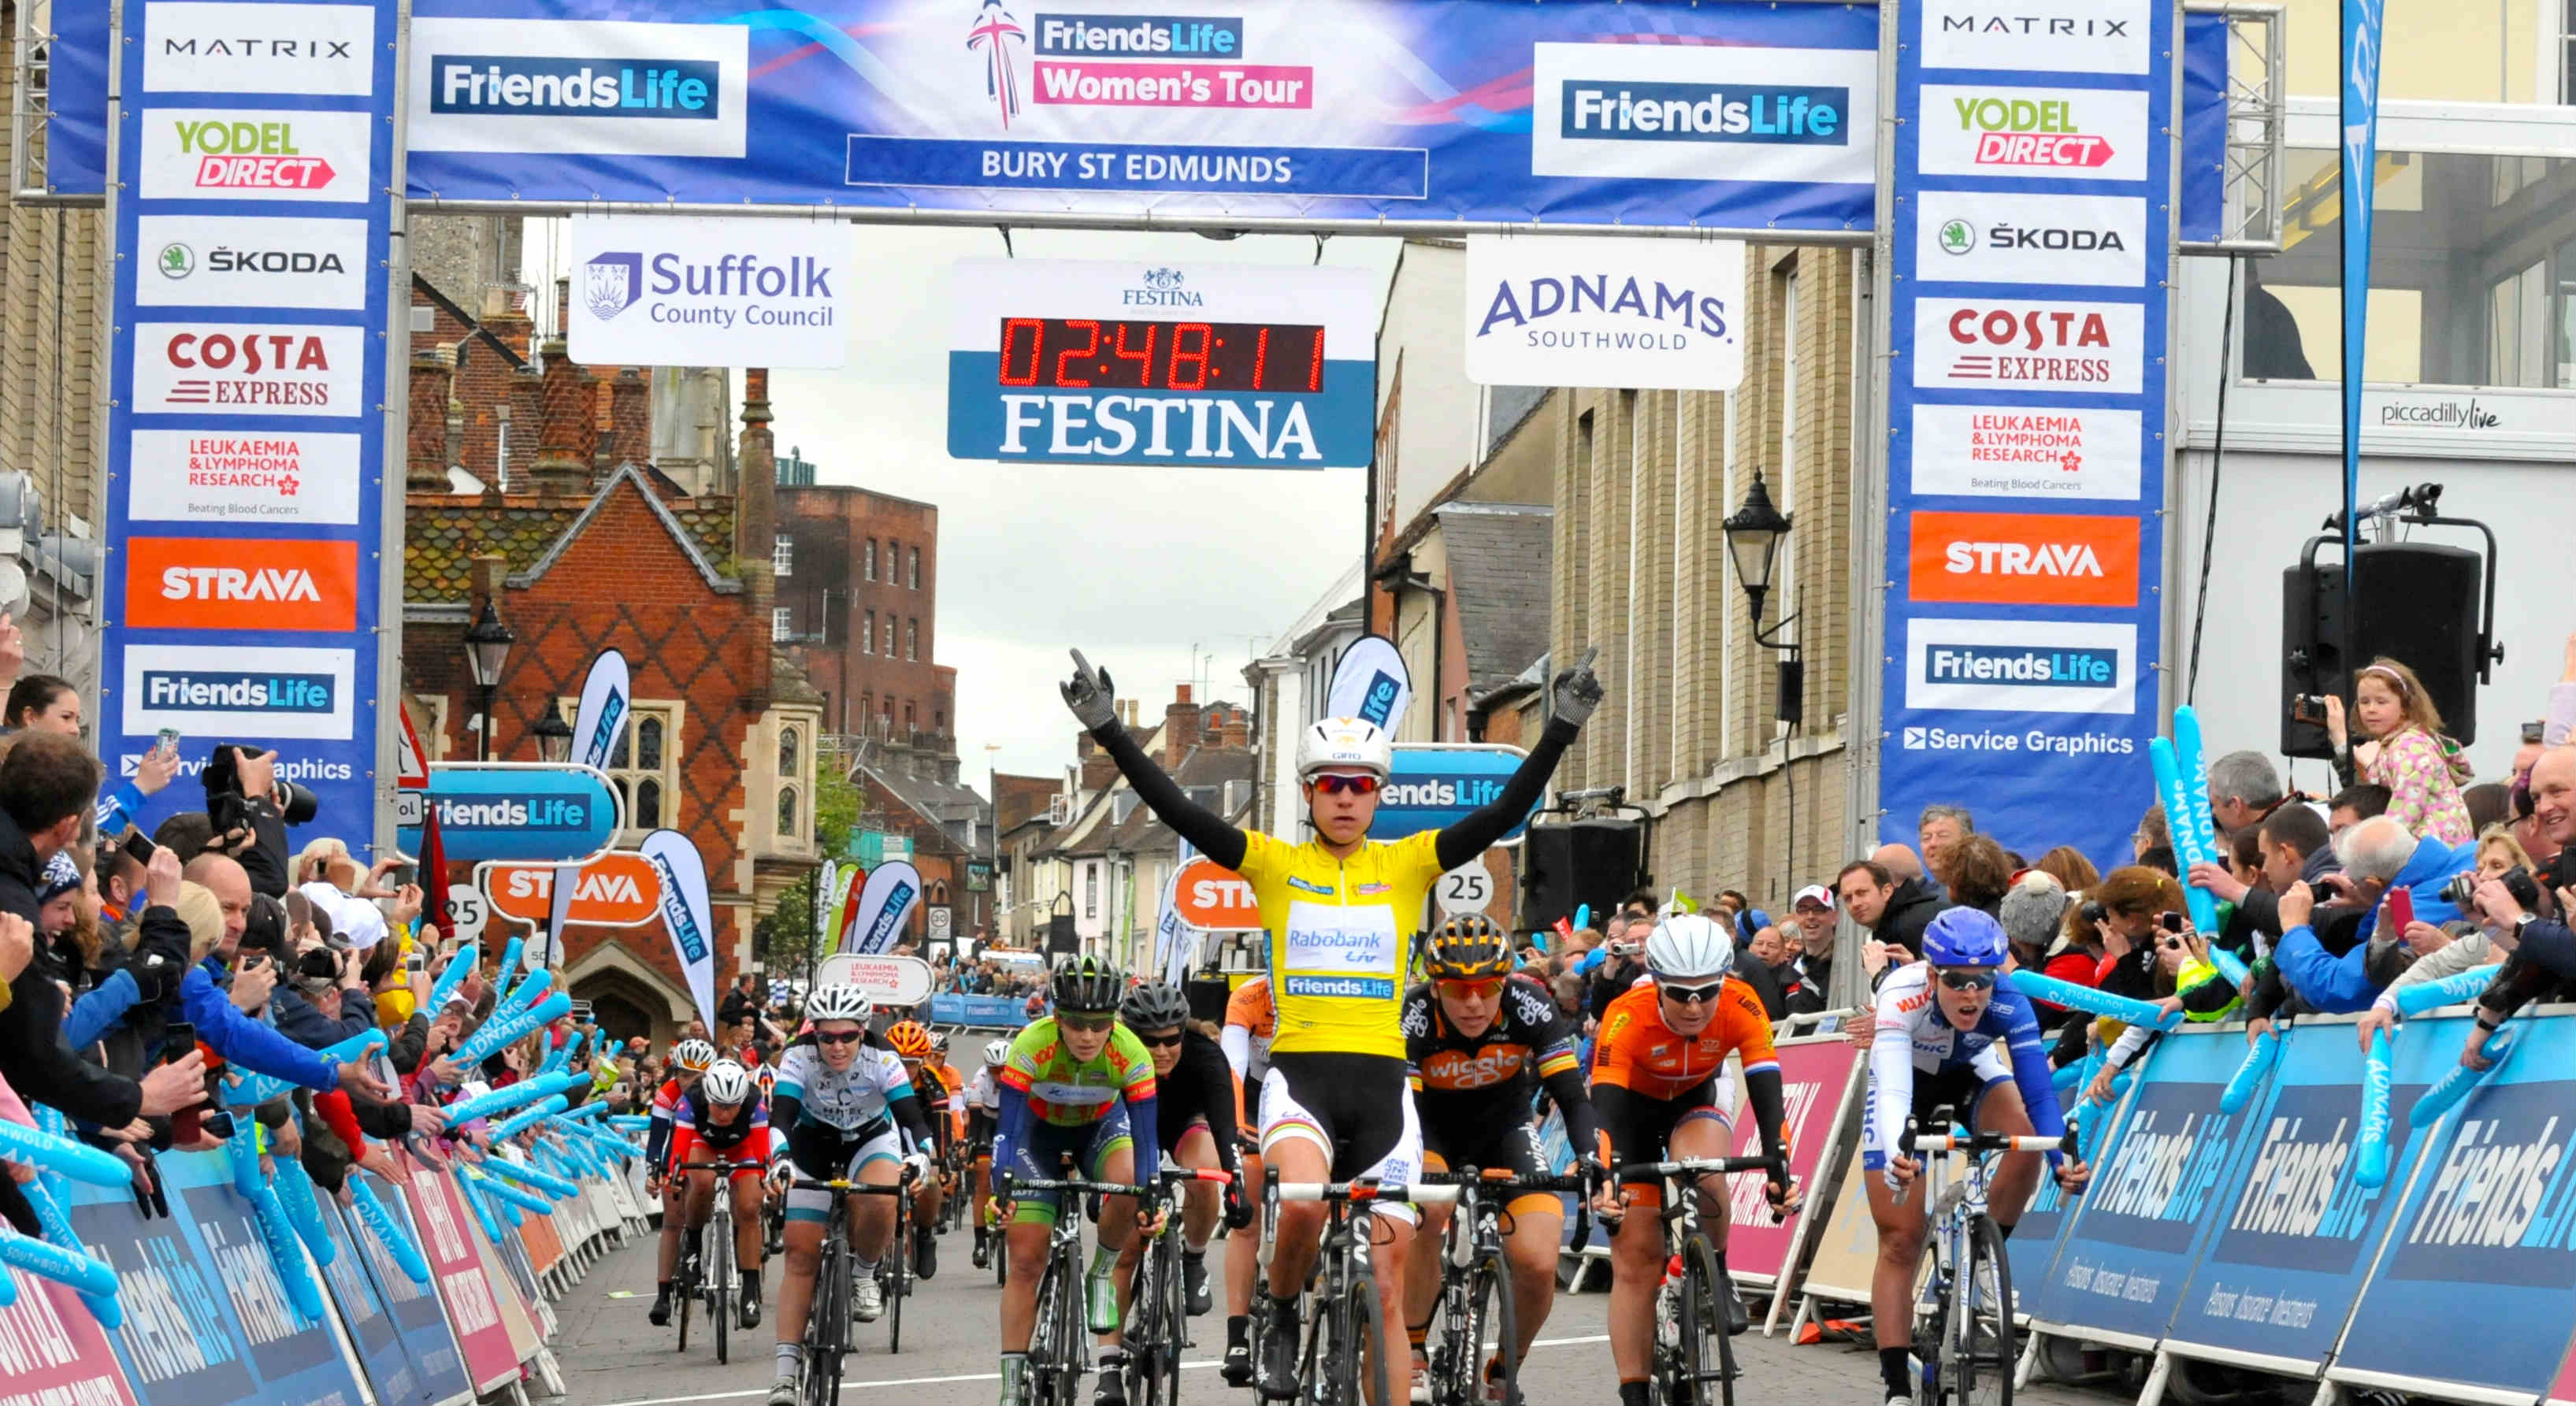 Suffolk to host opening stage of Friends Life Women's Tour in 2015